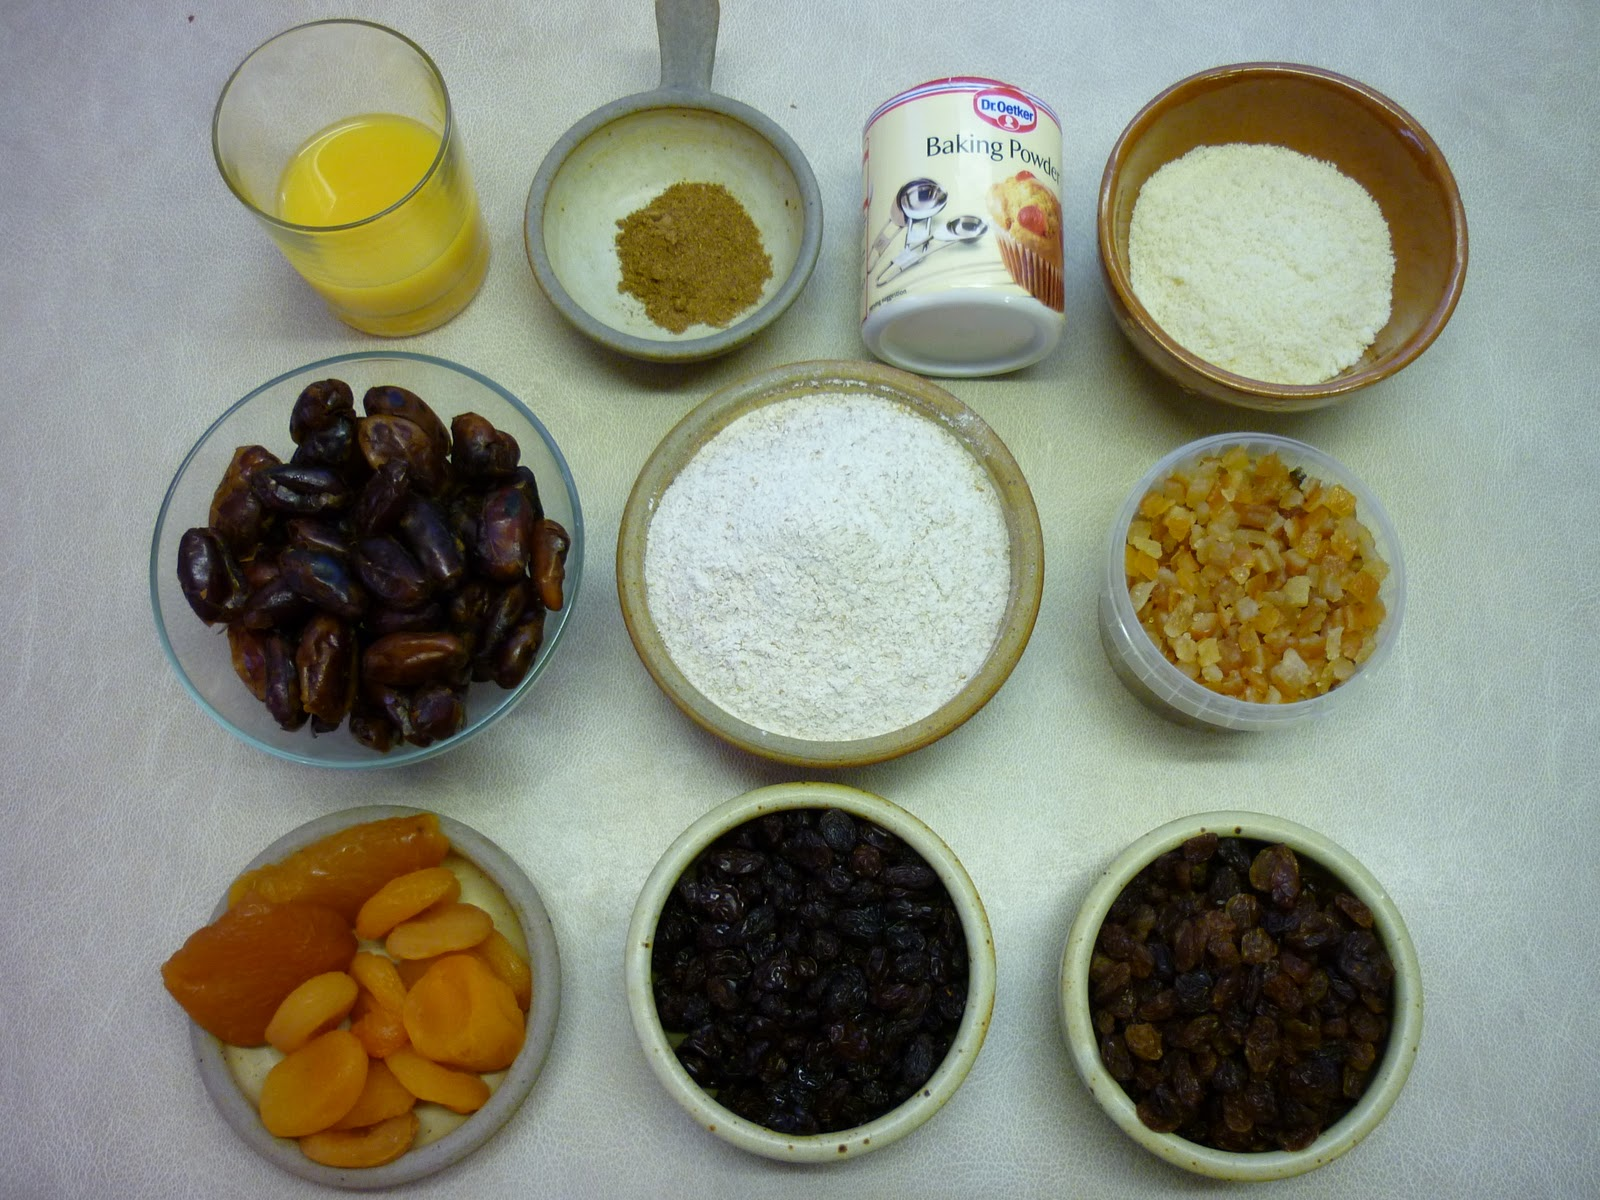 How Long Do You Boil Fruit Cake Ingredients For